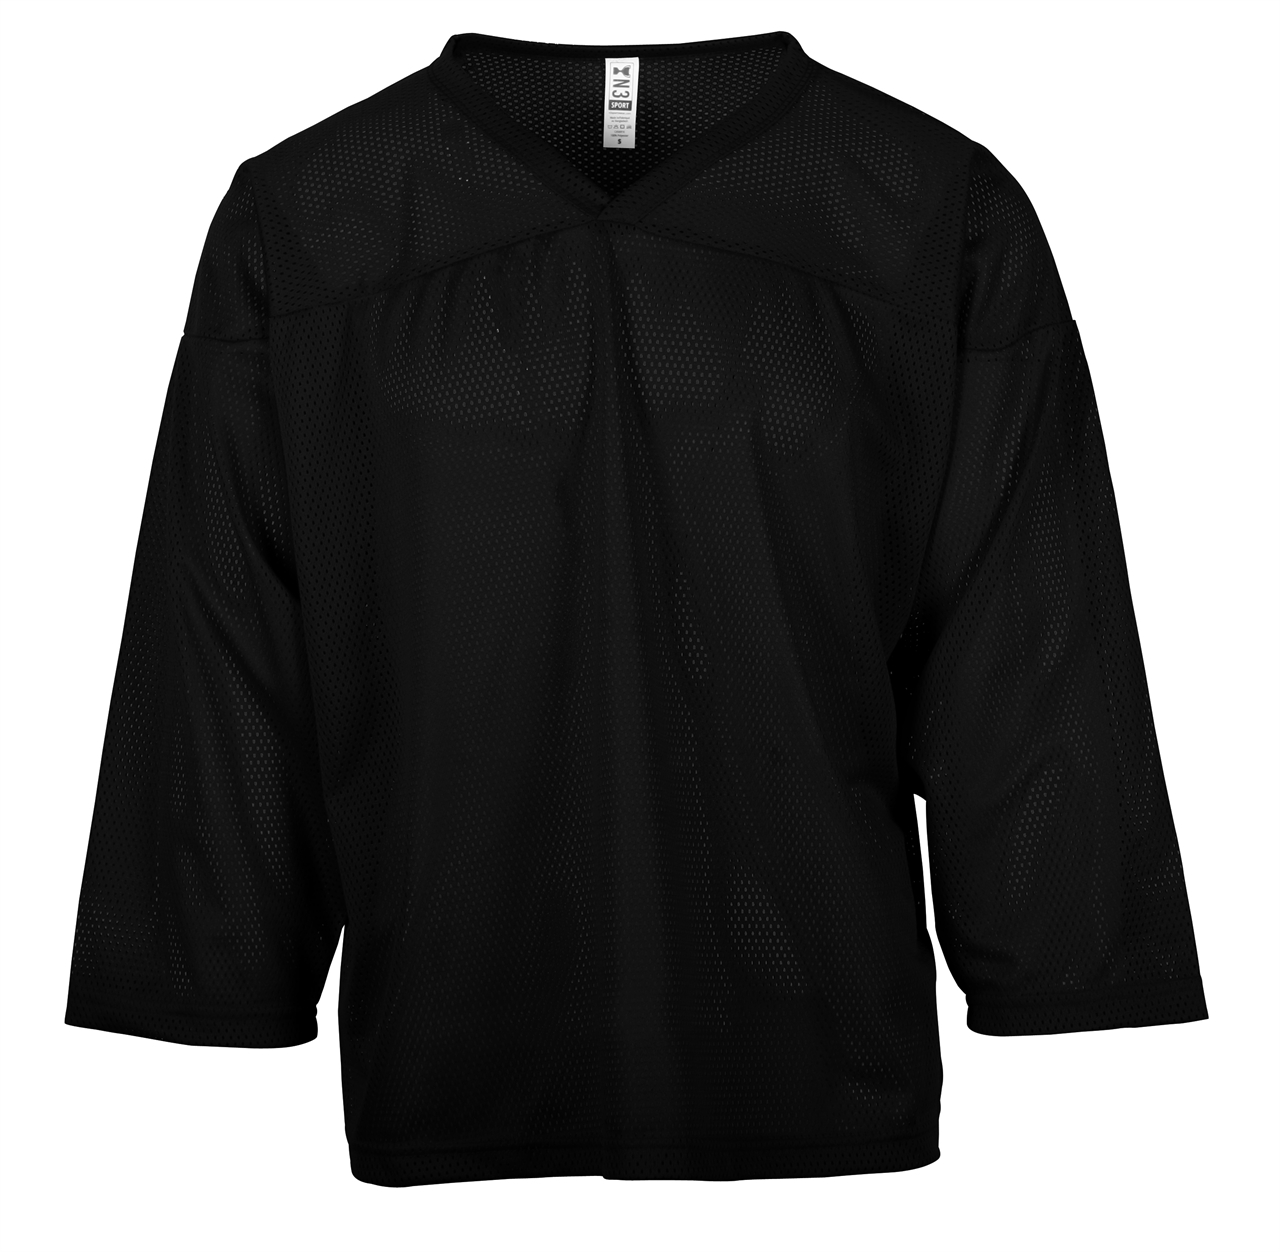 Picture of N3 Sport Mesh Hockey Jersey